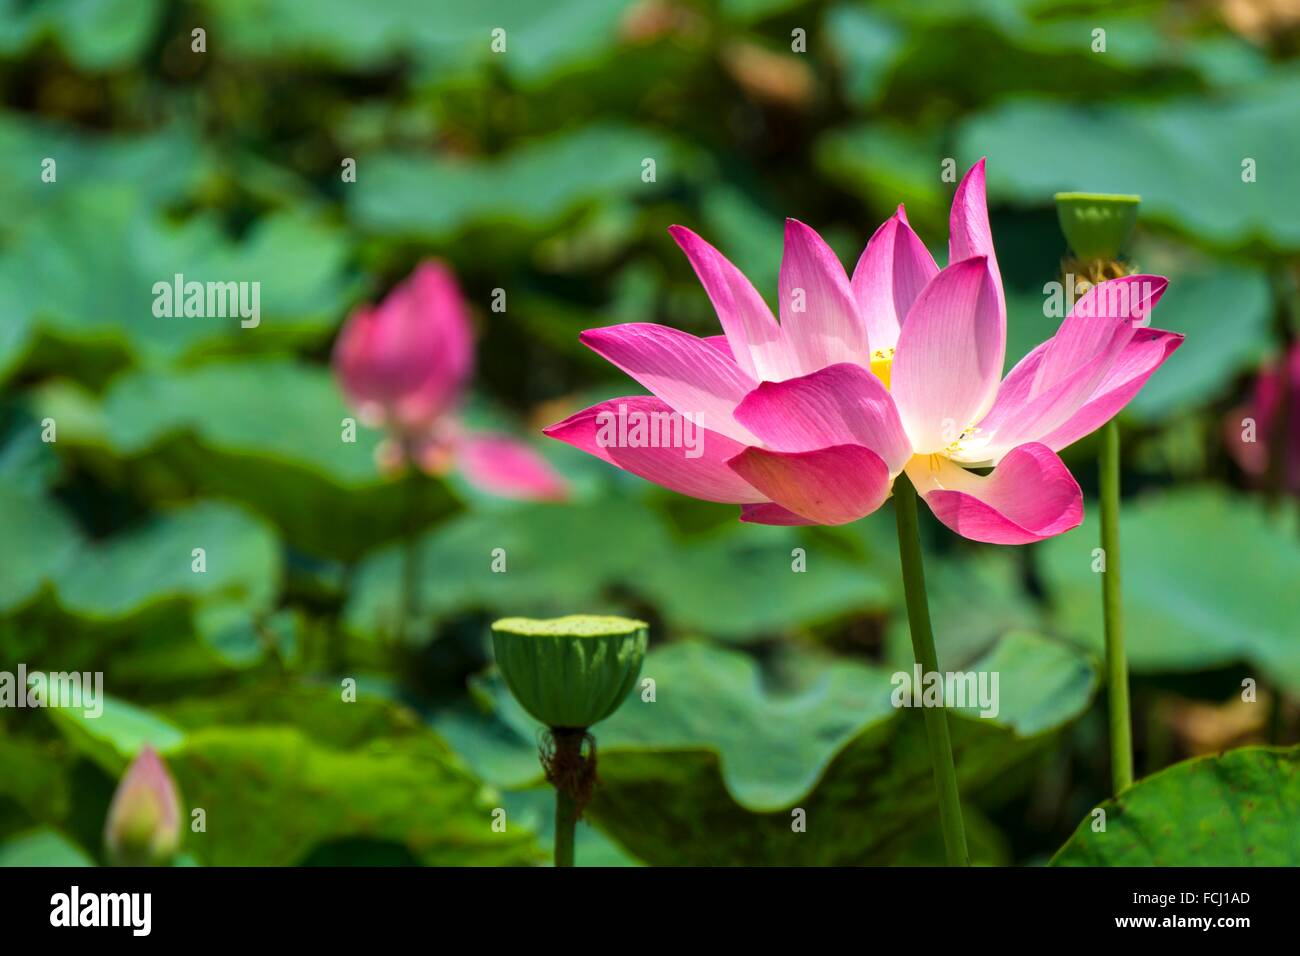 Red Lotus Flower Stock Photos Red Lotus Flower Stock Images Alamy